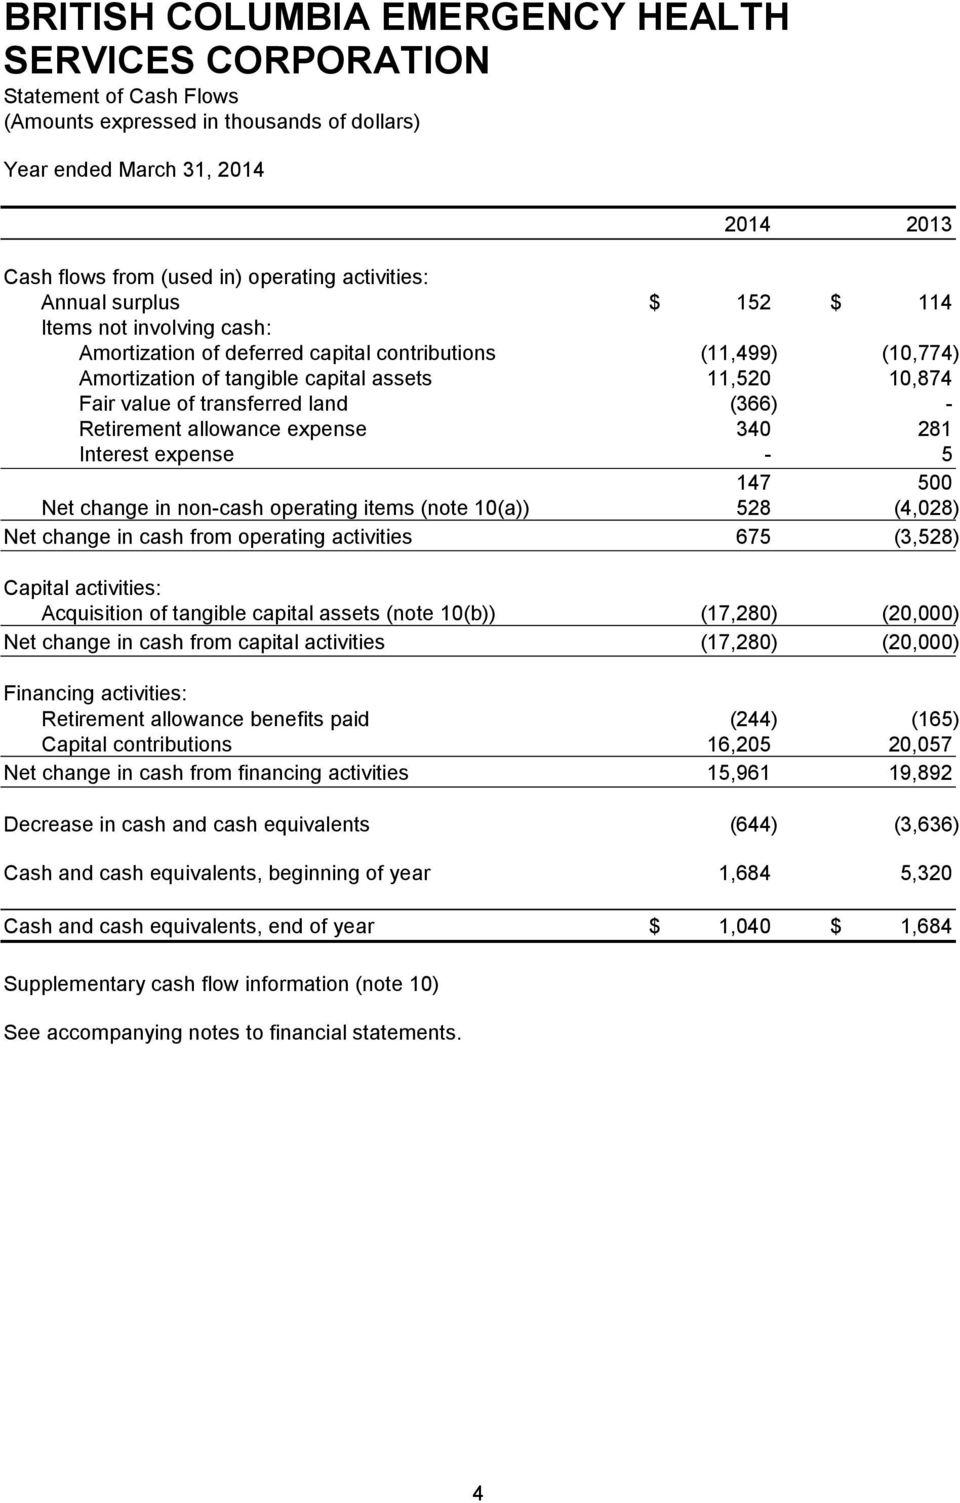 (note 10(a)) 528 (4,028) Net change in cash from operating activities 675 (3,528) Capital activities: Acquisition of tangible capital assets (note 10(b)) (17,280) (20,000) Net change in cash from